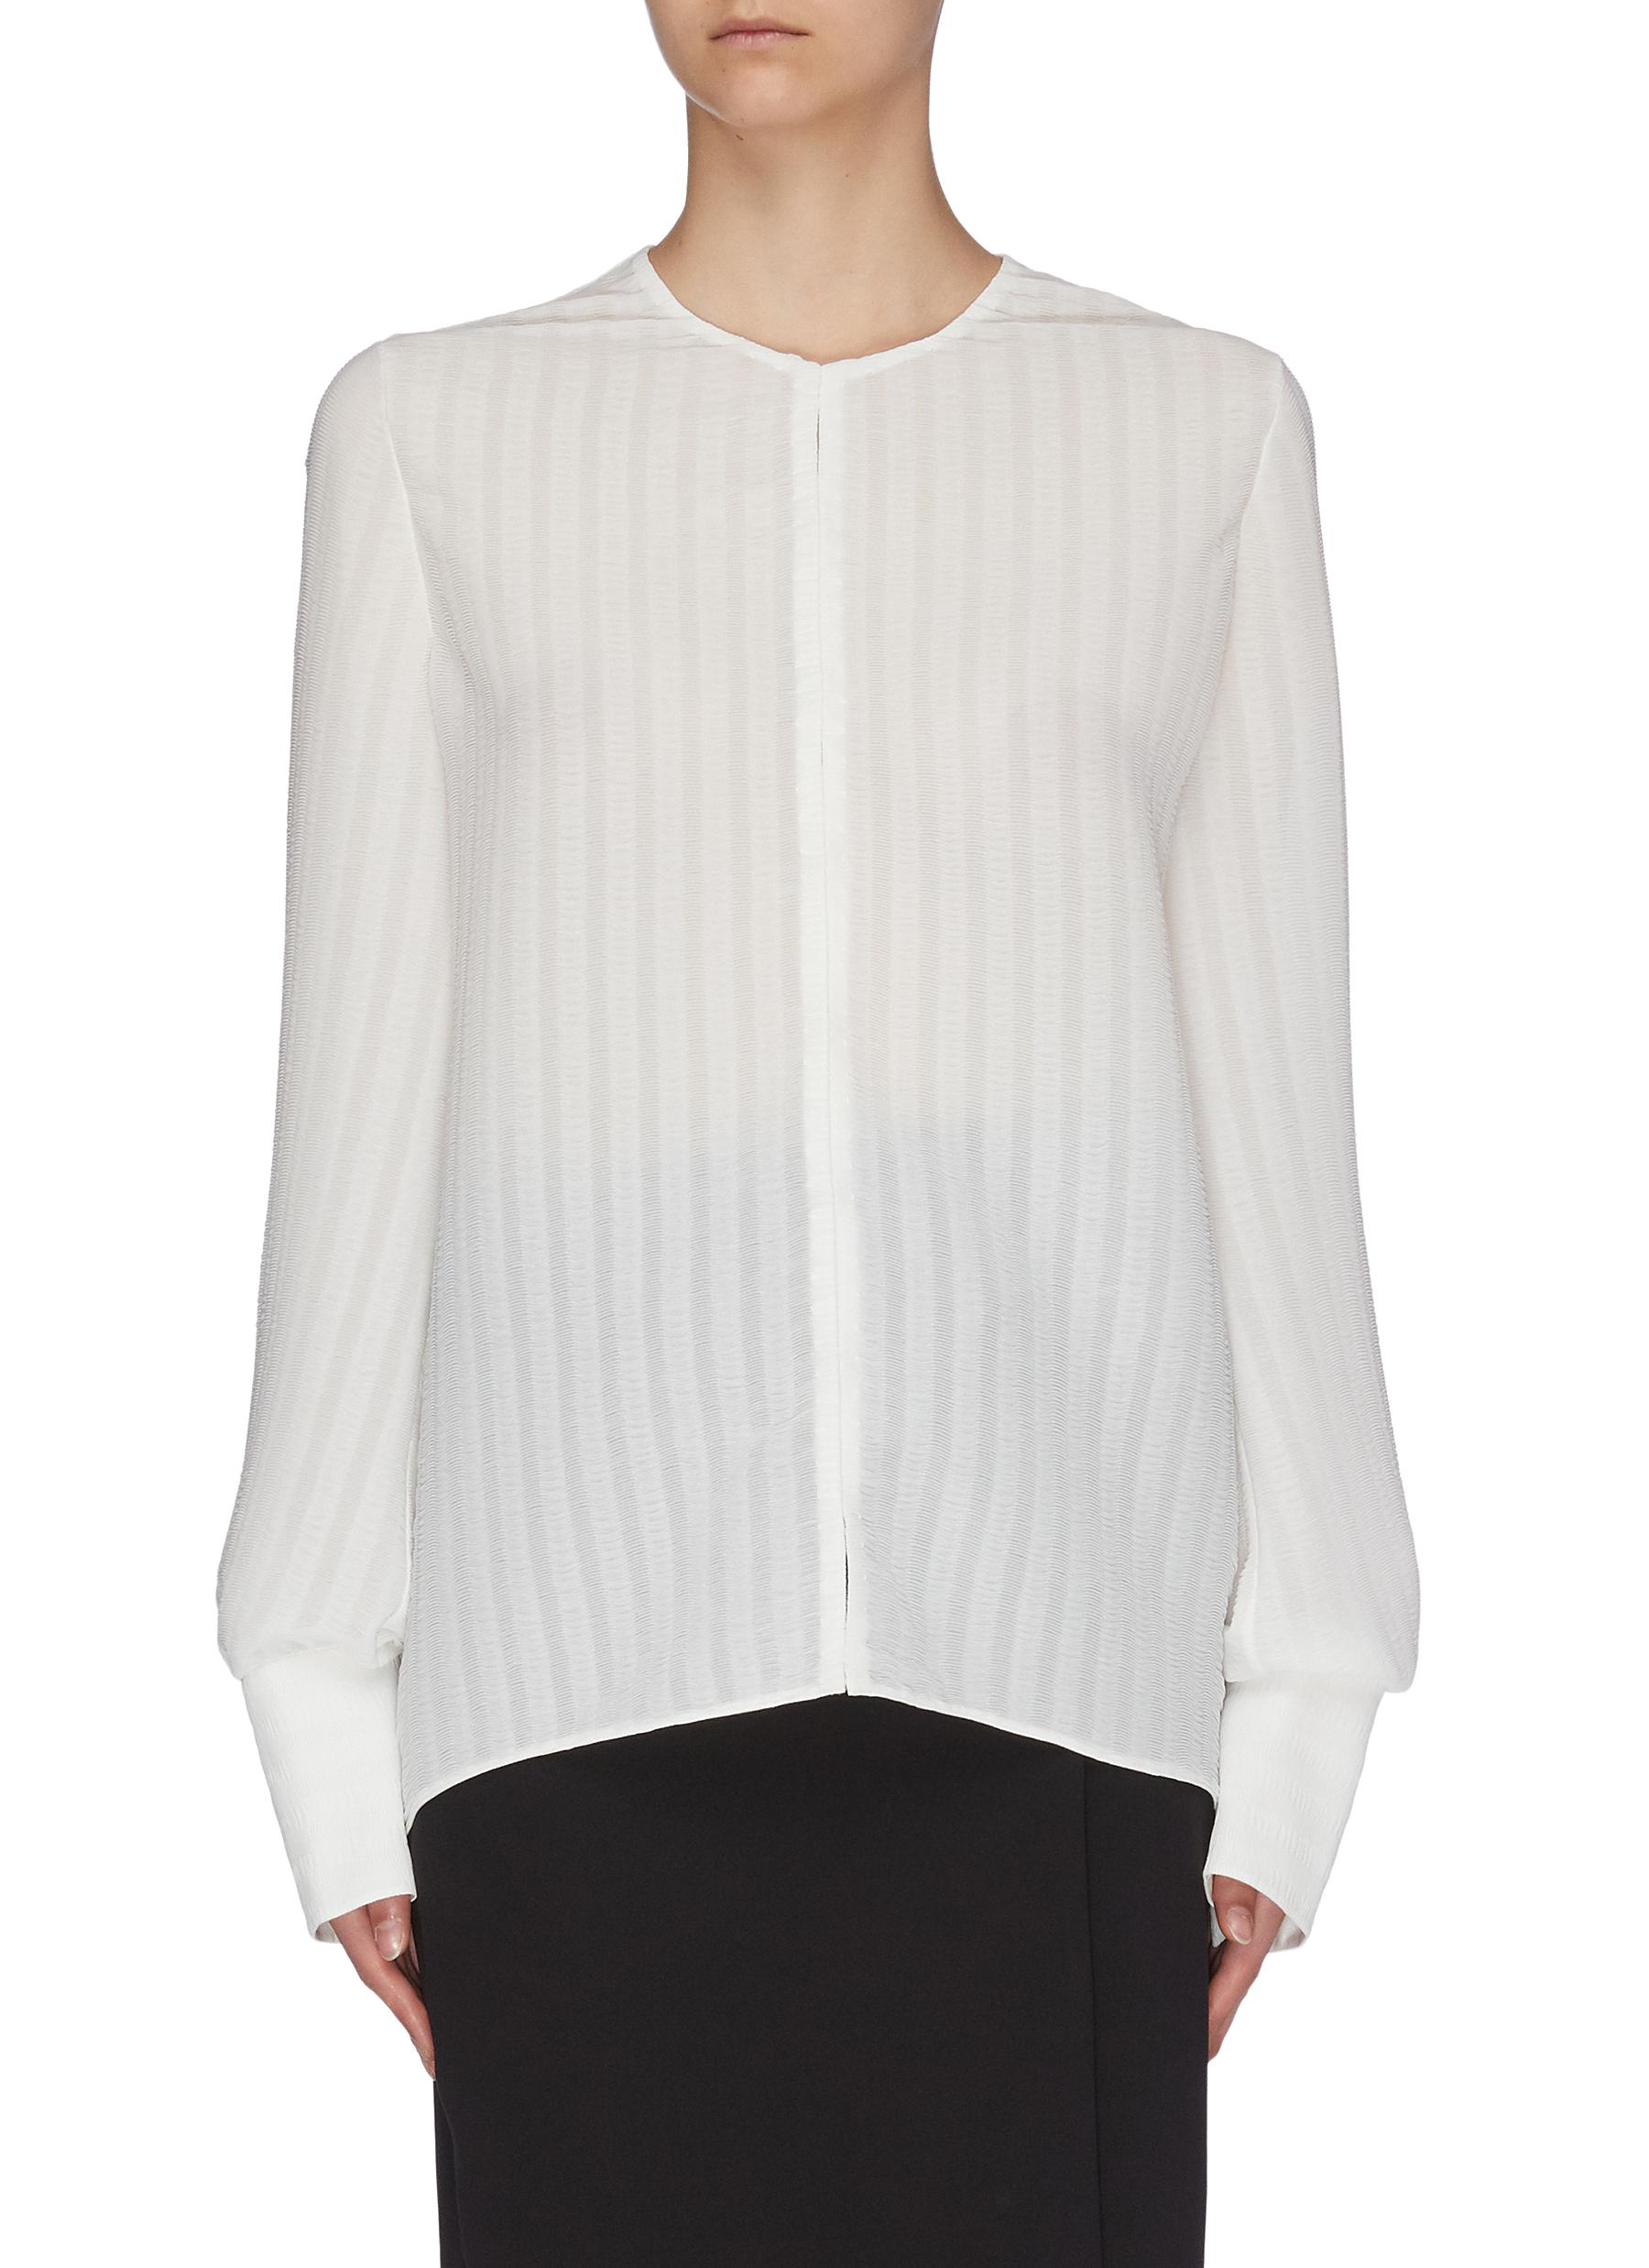 Buy The Row Tops 'Bruna' textured stripe blouse